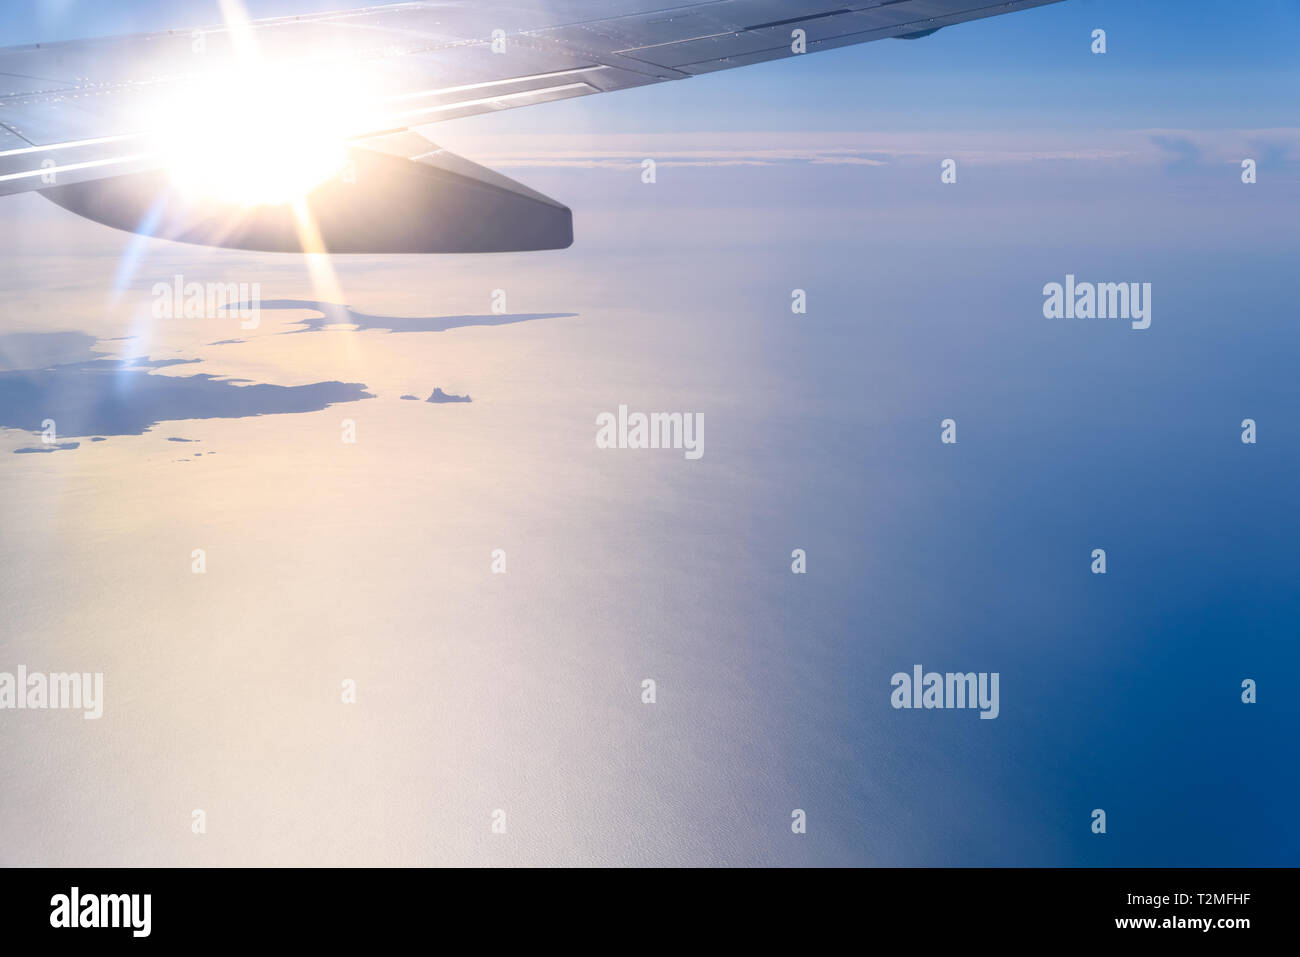 View of the sea from the window of an airplane. Stock Photo